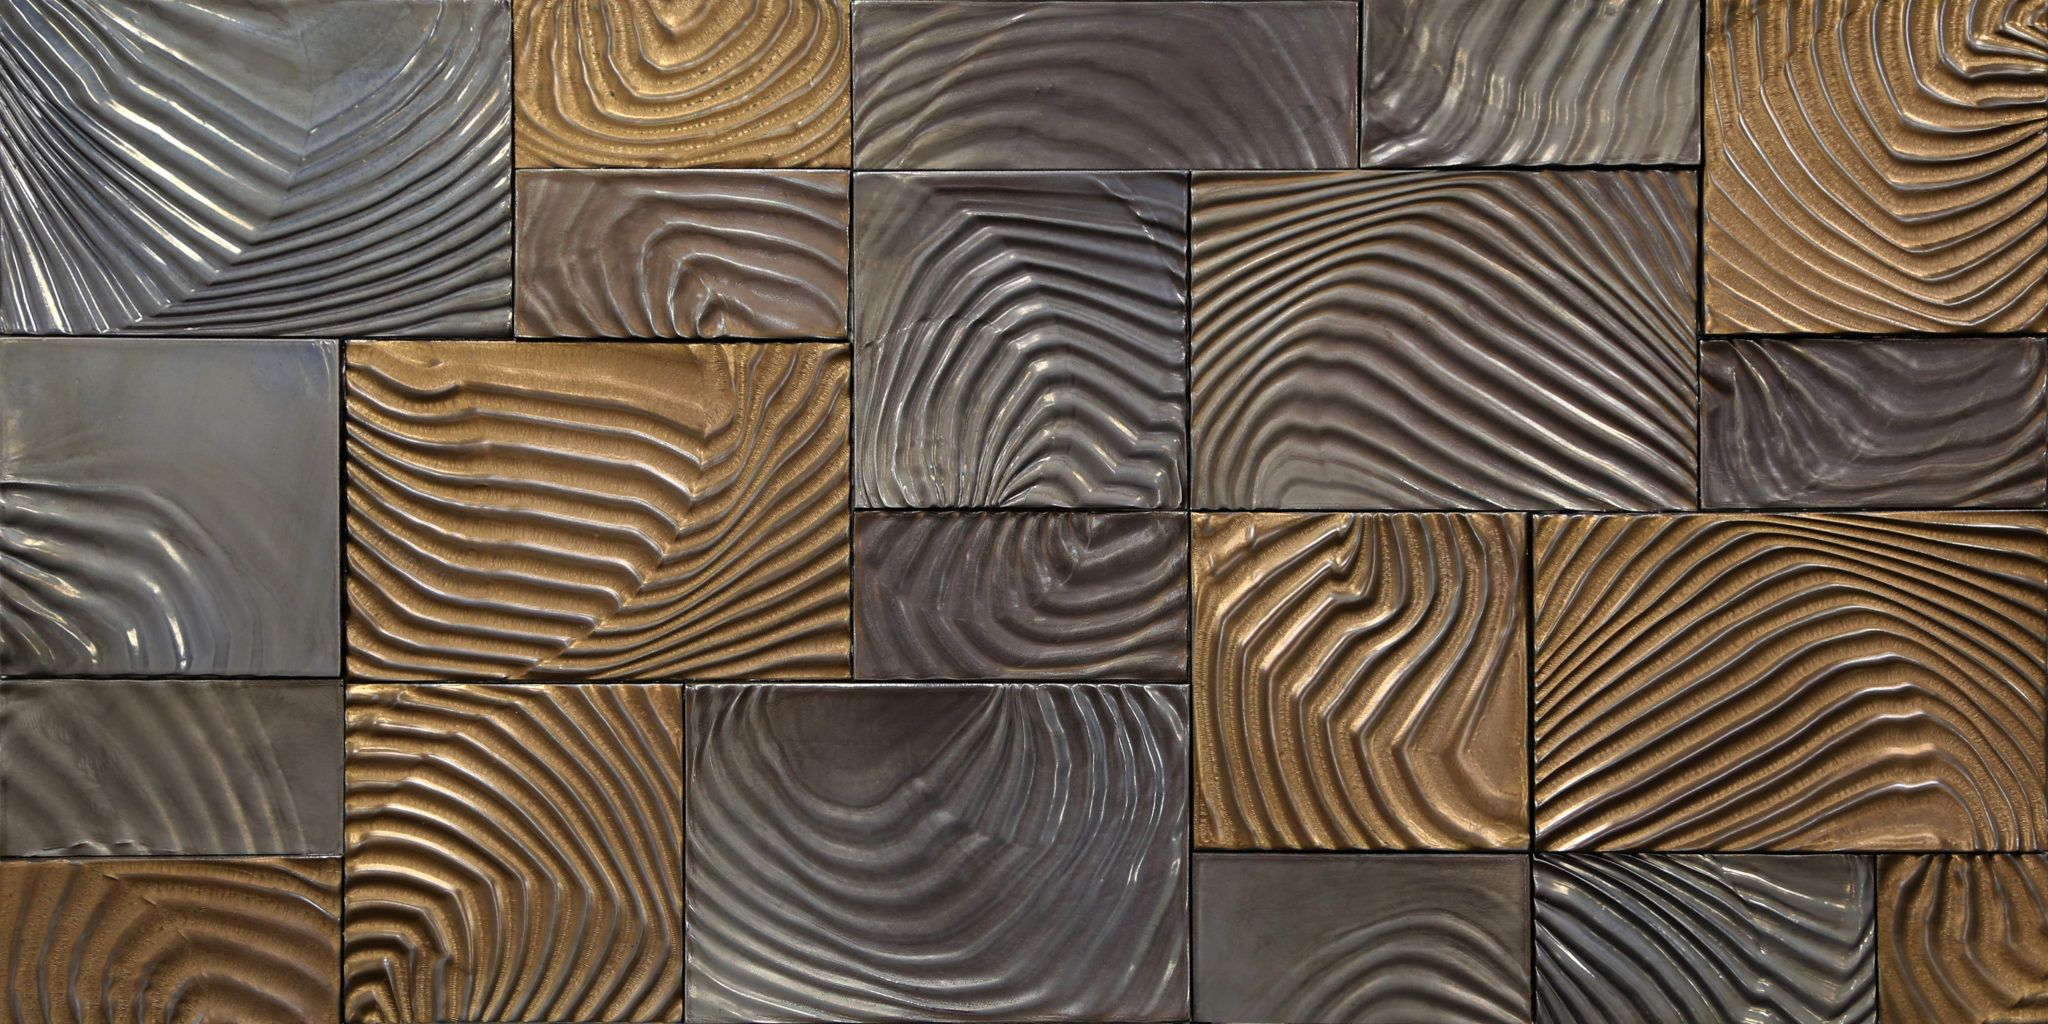 Three Dimensional Artistic Tile Why Tile Artistic Tile Dimensional Tile Tiles Texture